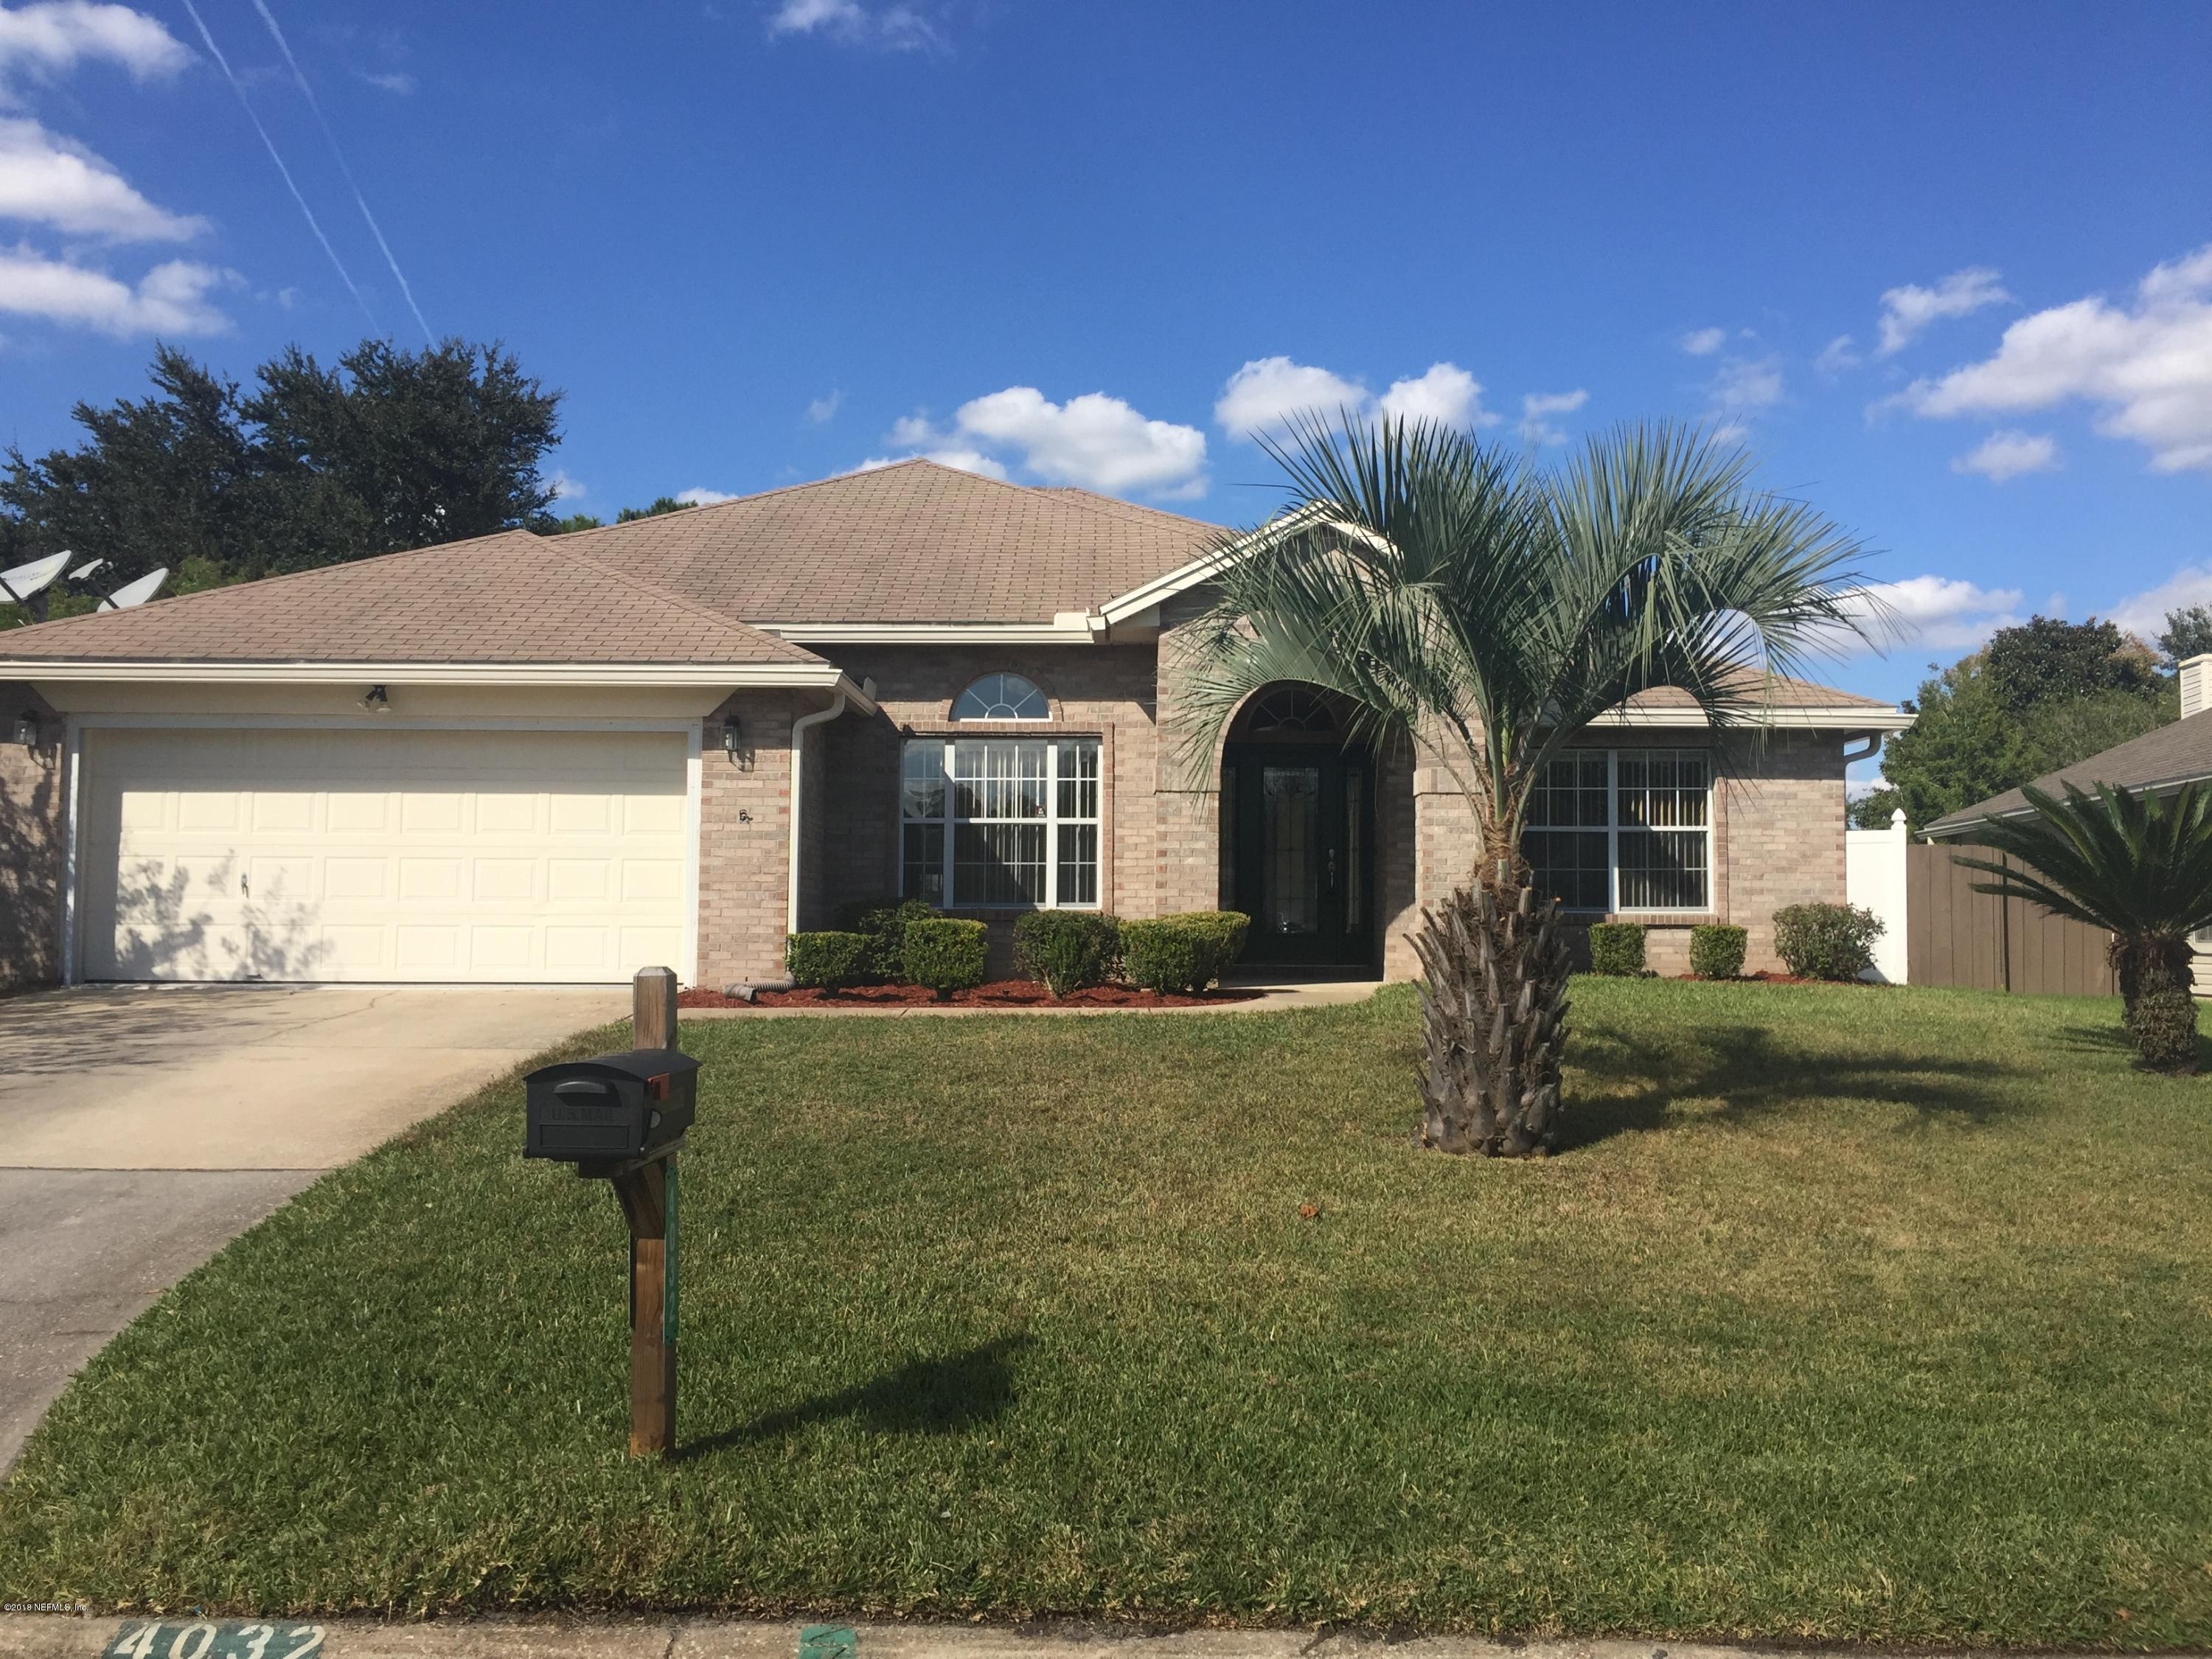 4032 SAVANNAH GLEN, ORANGE PARK, FLORIDA 32073, 3 Bedrooms Bedrooms, ,2 BathroomsBathrooms,Residential - single family,For sale,SAVANNAH GLEN,965111